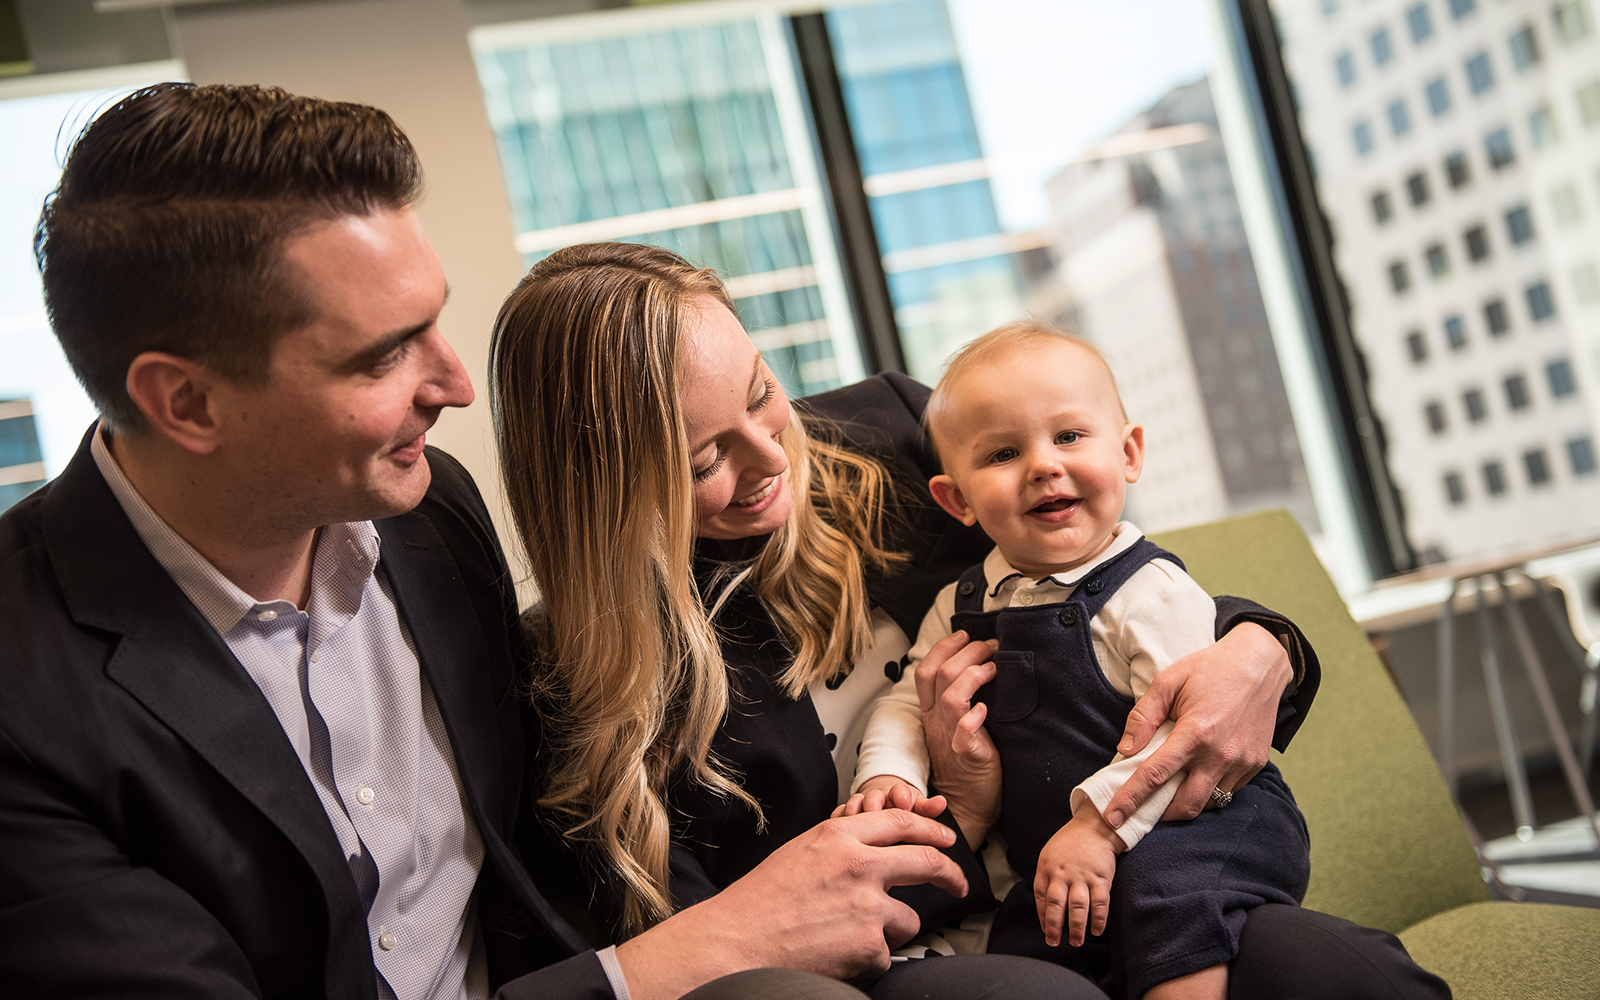 Chris DiGiacomo (left) and his wife Julie Marquis DiGiacomo (right) balanced work, marriage, and childbirth to earn their MBAs through UConn's PMBA program. (Nathan Oldham / UConn School of Business)